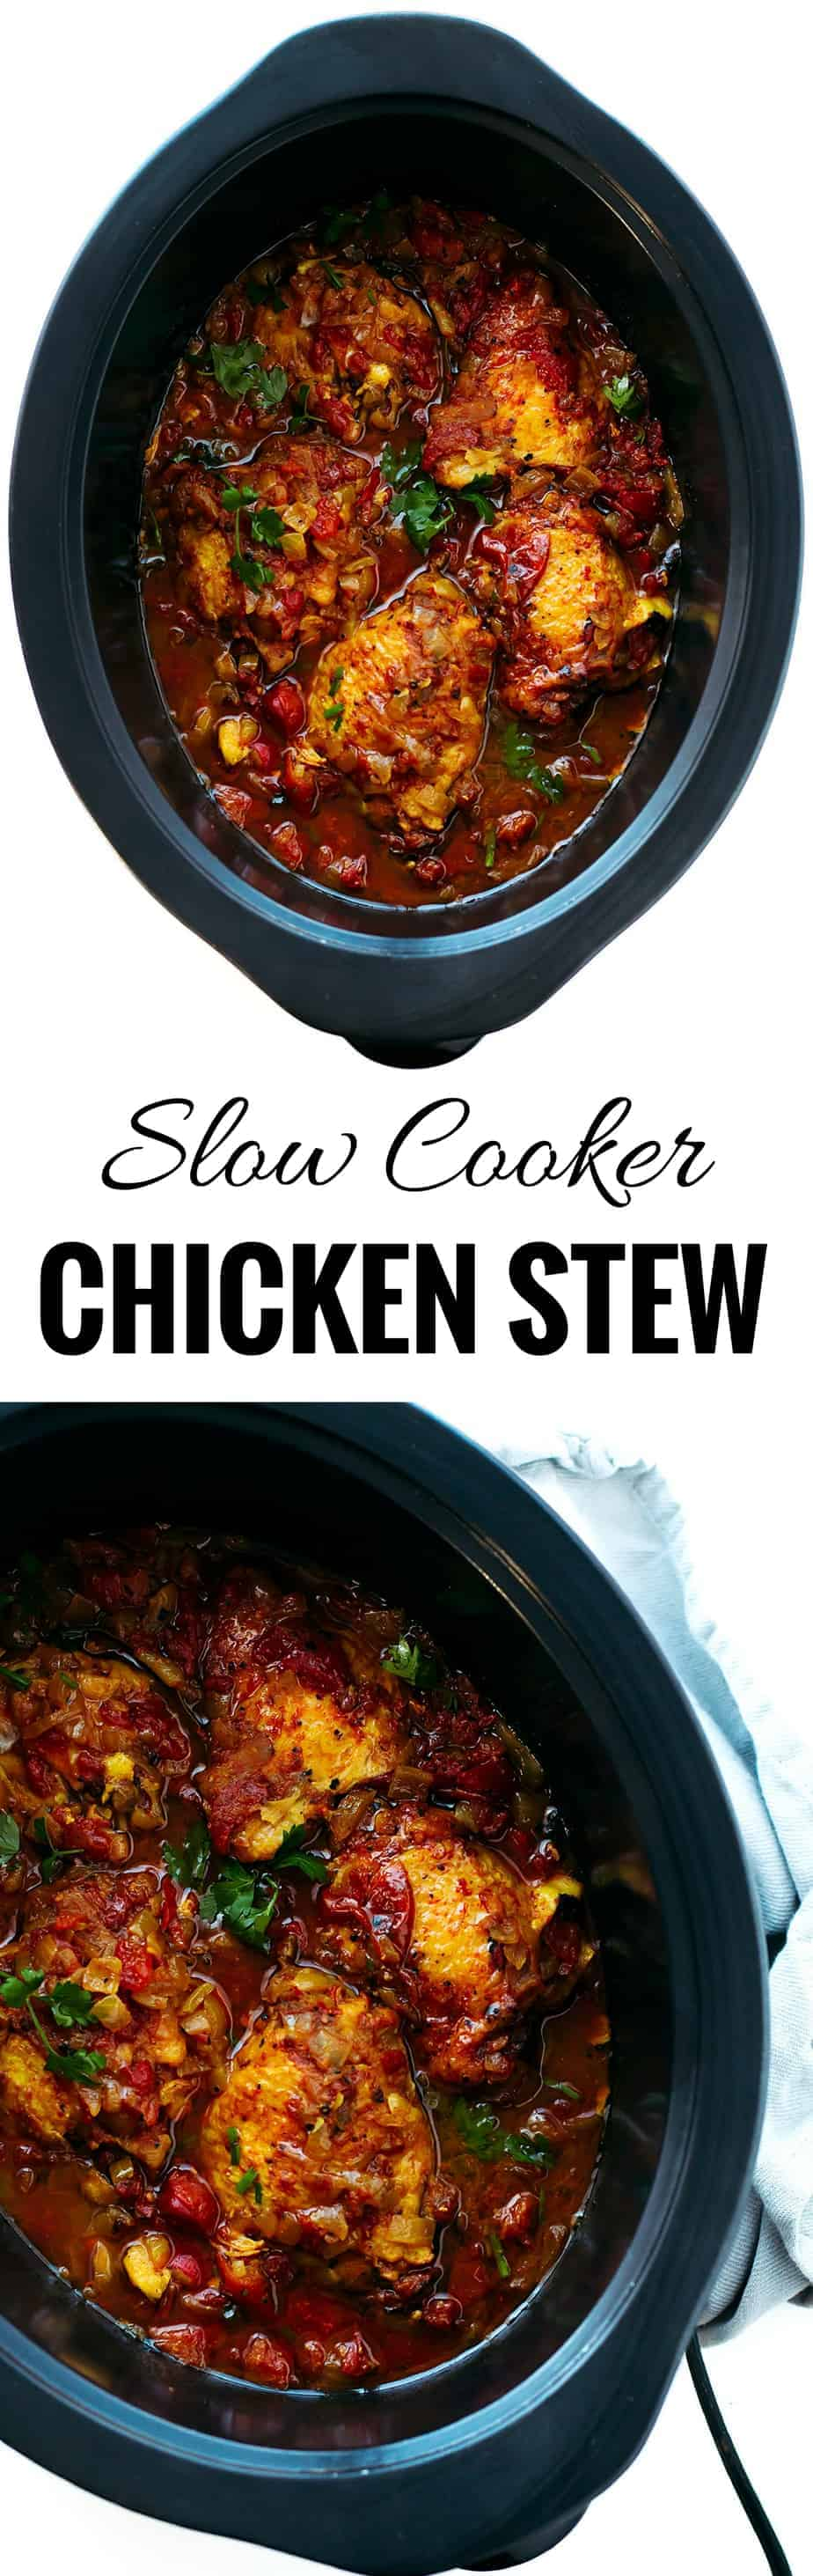 Slow Cooker Chicken Stew - So Flavorful and Tender! - Posh Journal